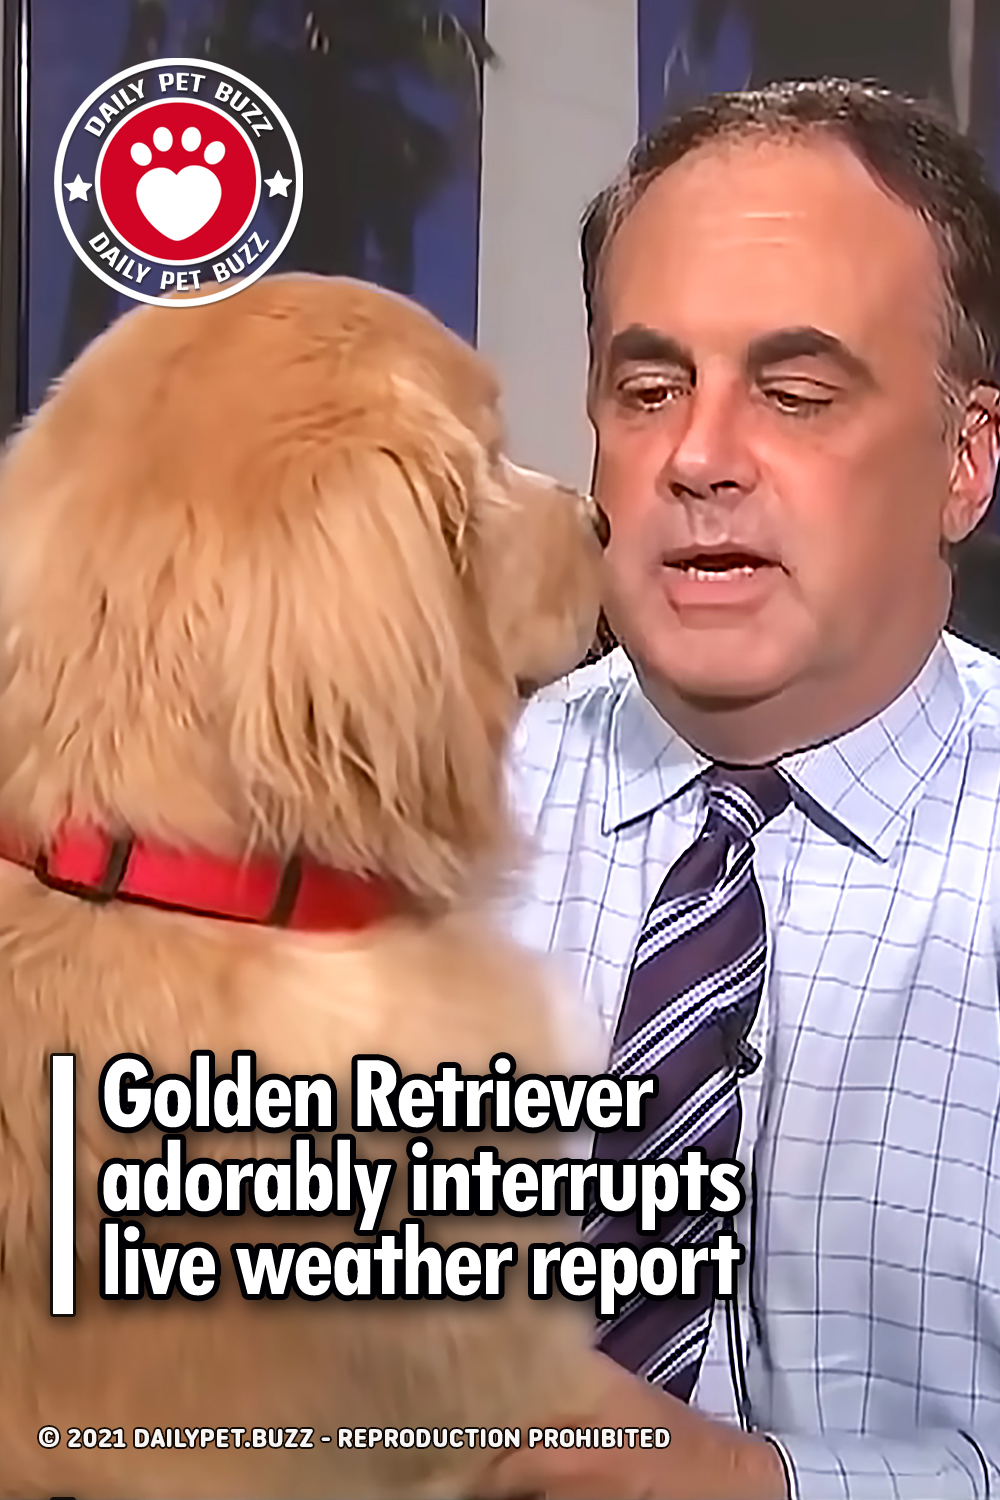 Golden Retriever adorably interrupts live weather report